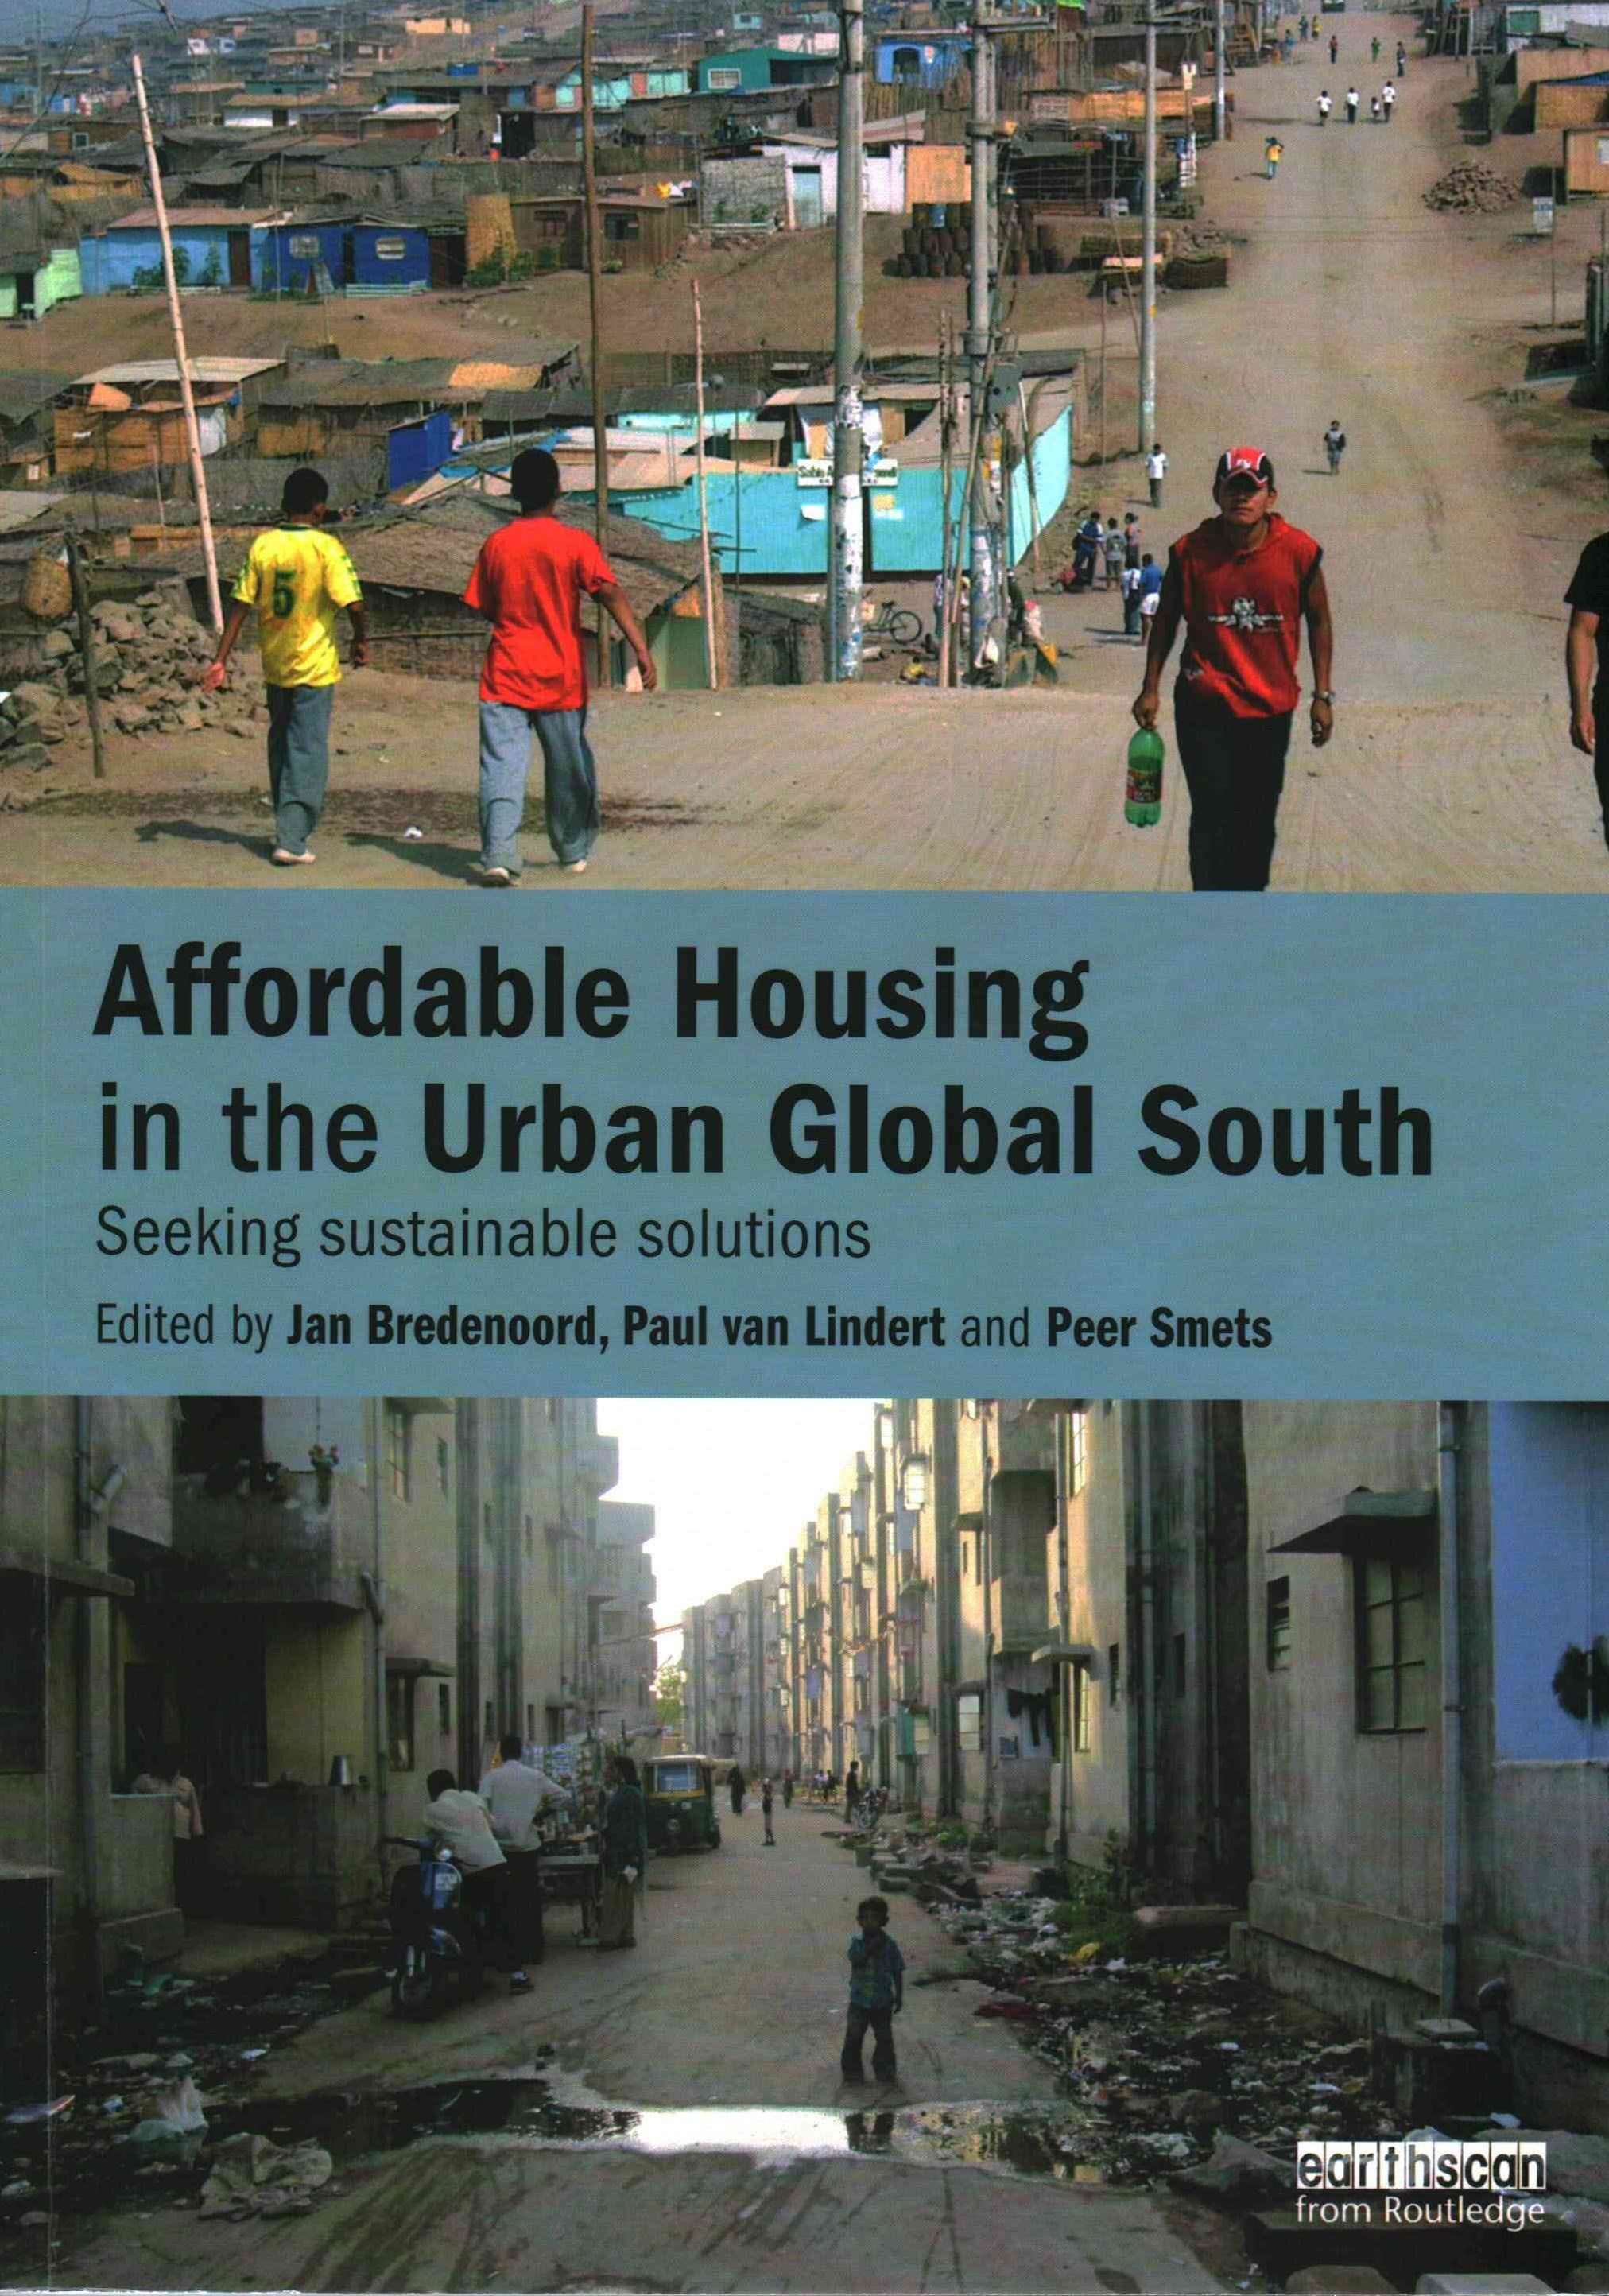 Affordable Housing in the Urban Global South